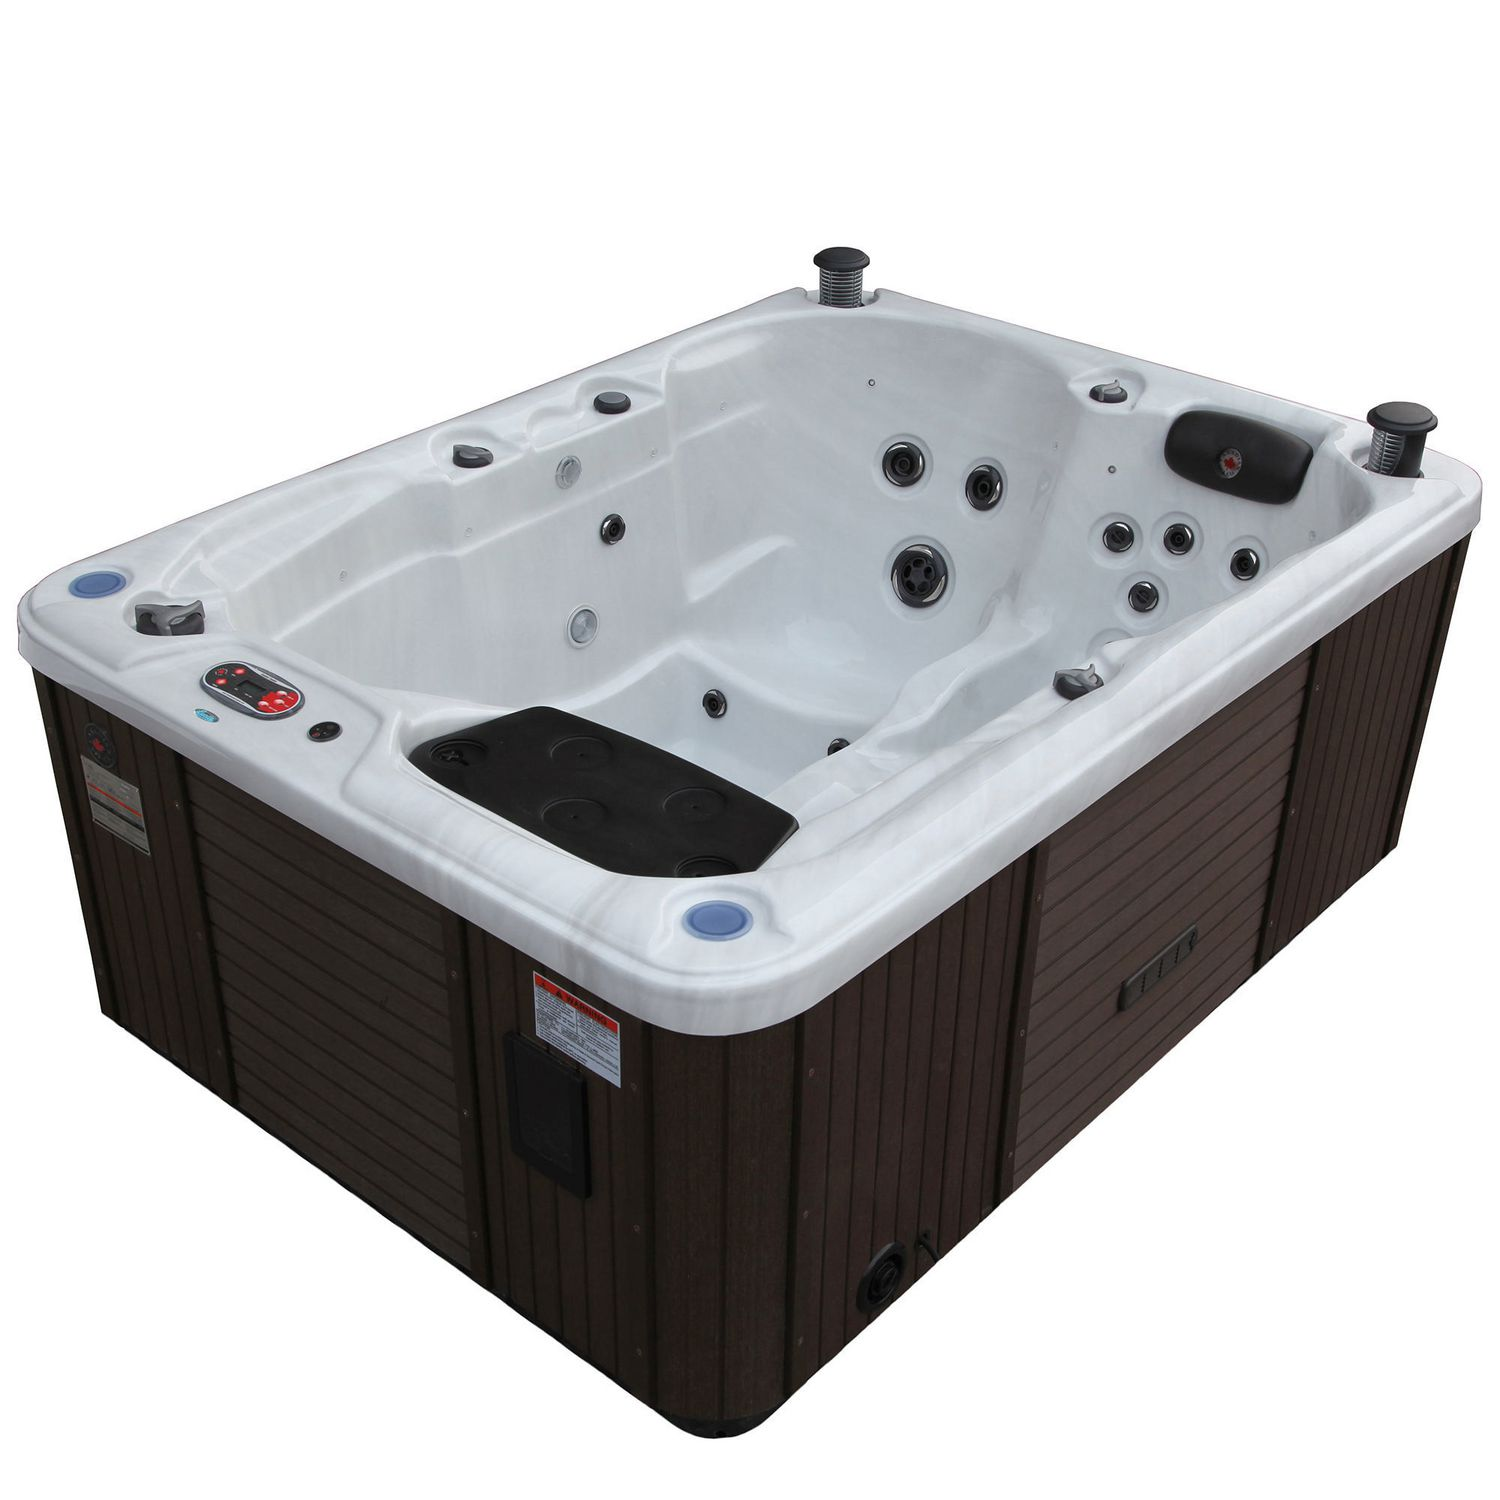 Canadian Spa Co Quebec 29-Jet Plug and Play Hot Tub | Walmart Canada